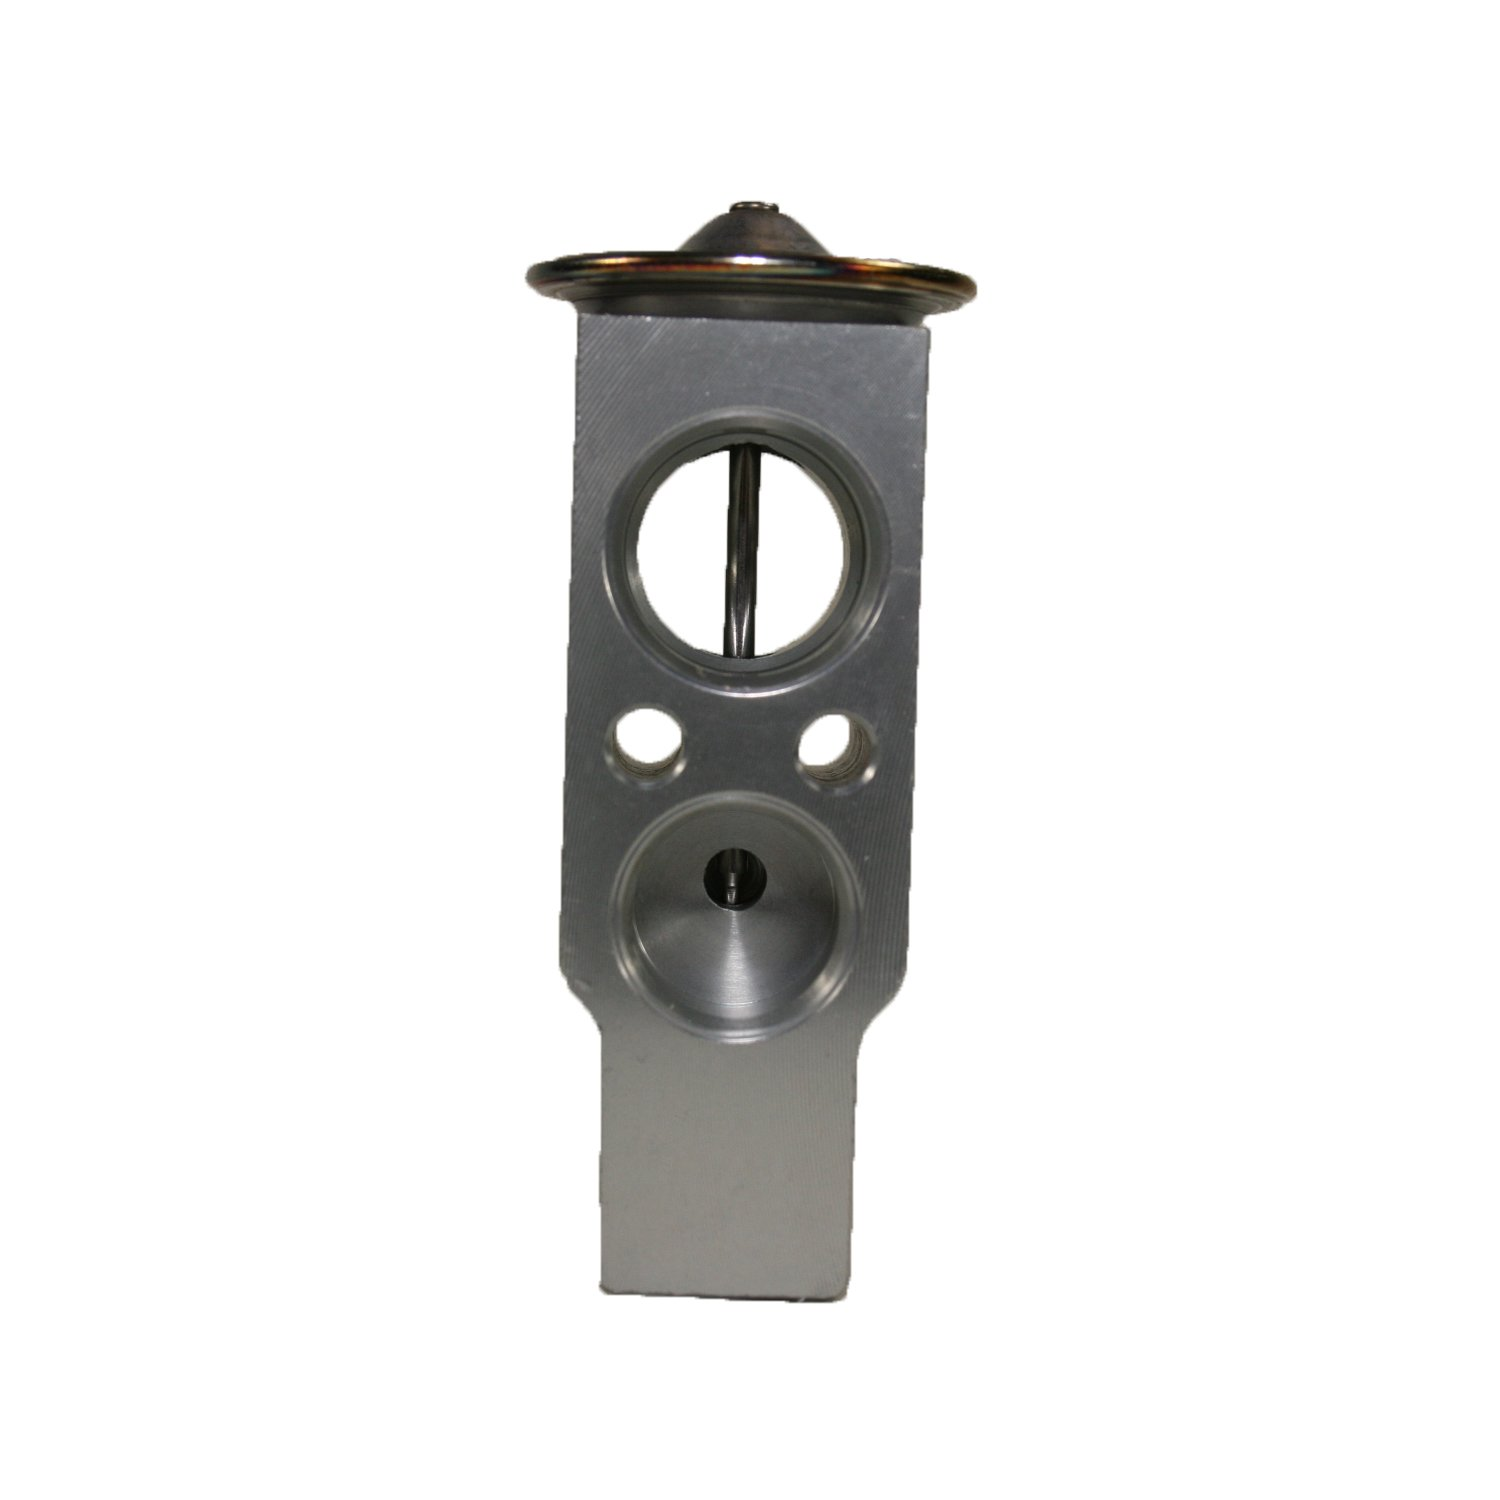 TCW Quality A//C Expansion Block 18-5903 with Perfect Vehicle Fitment